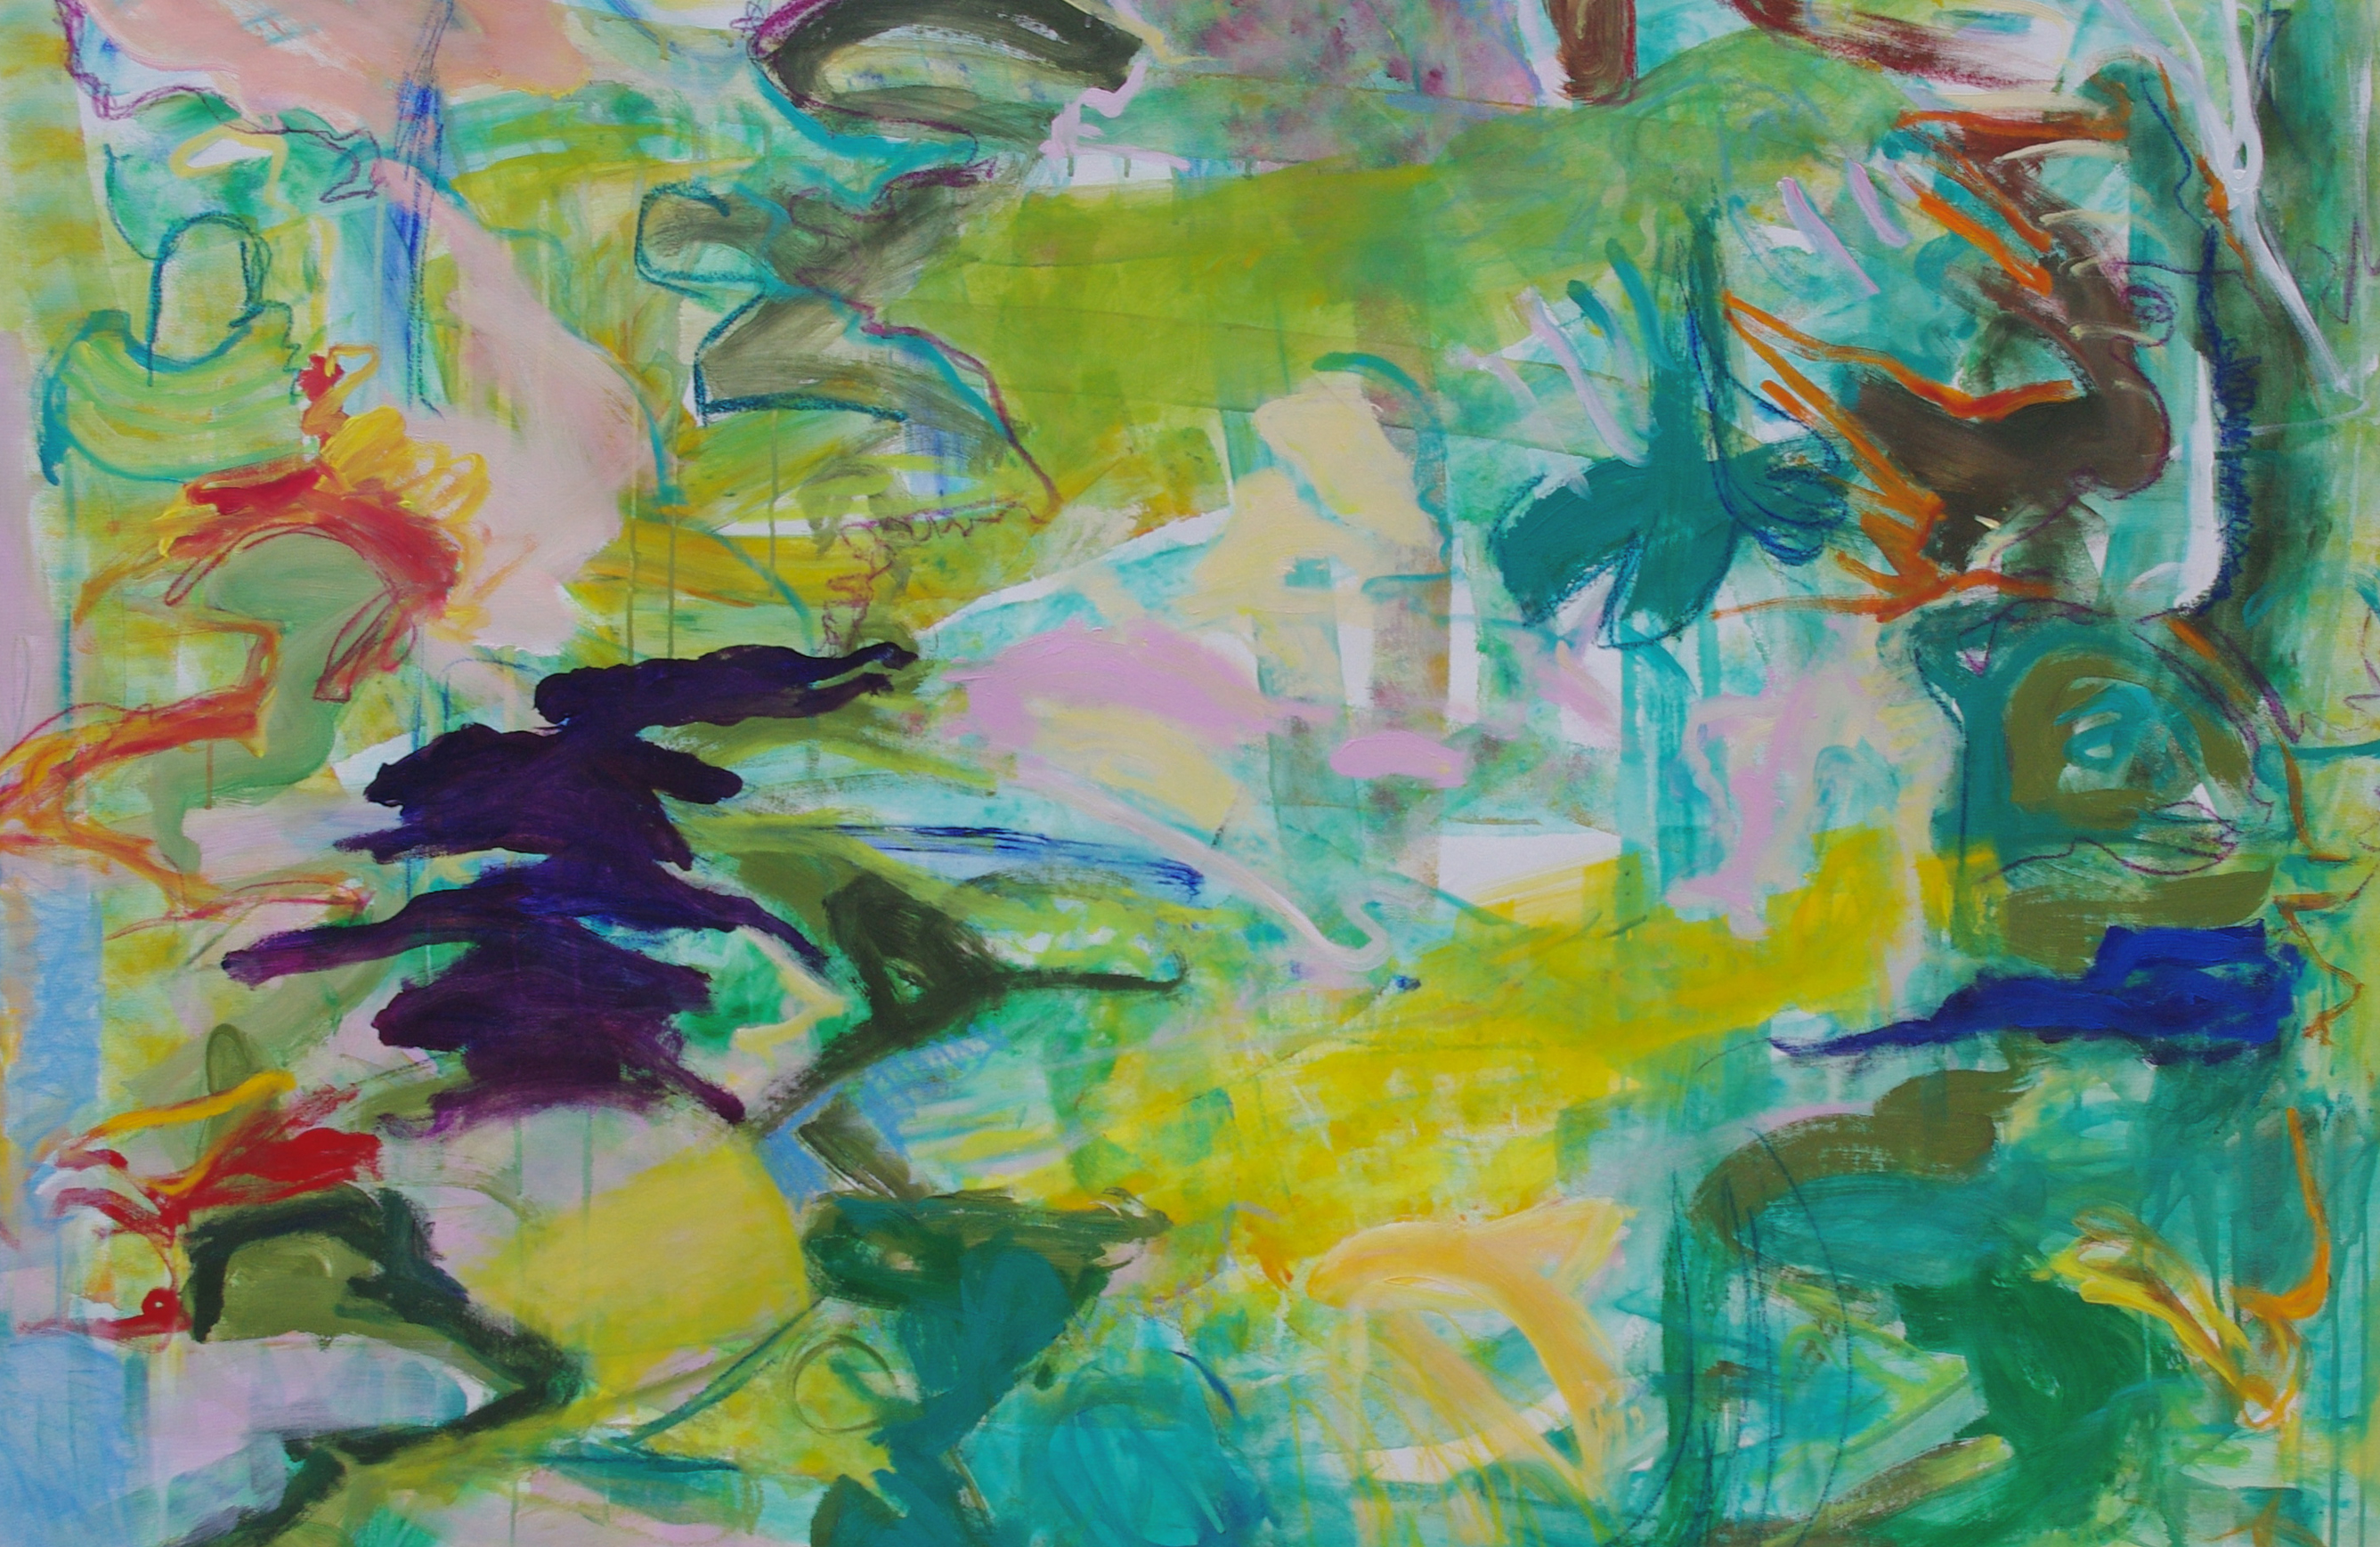 The Nature 150x165cm